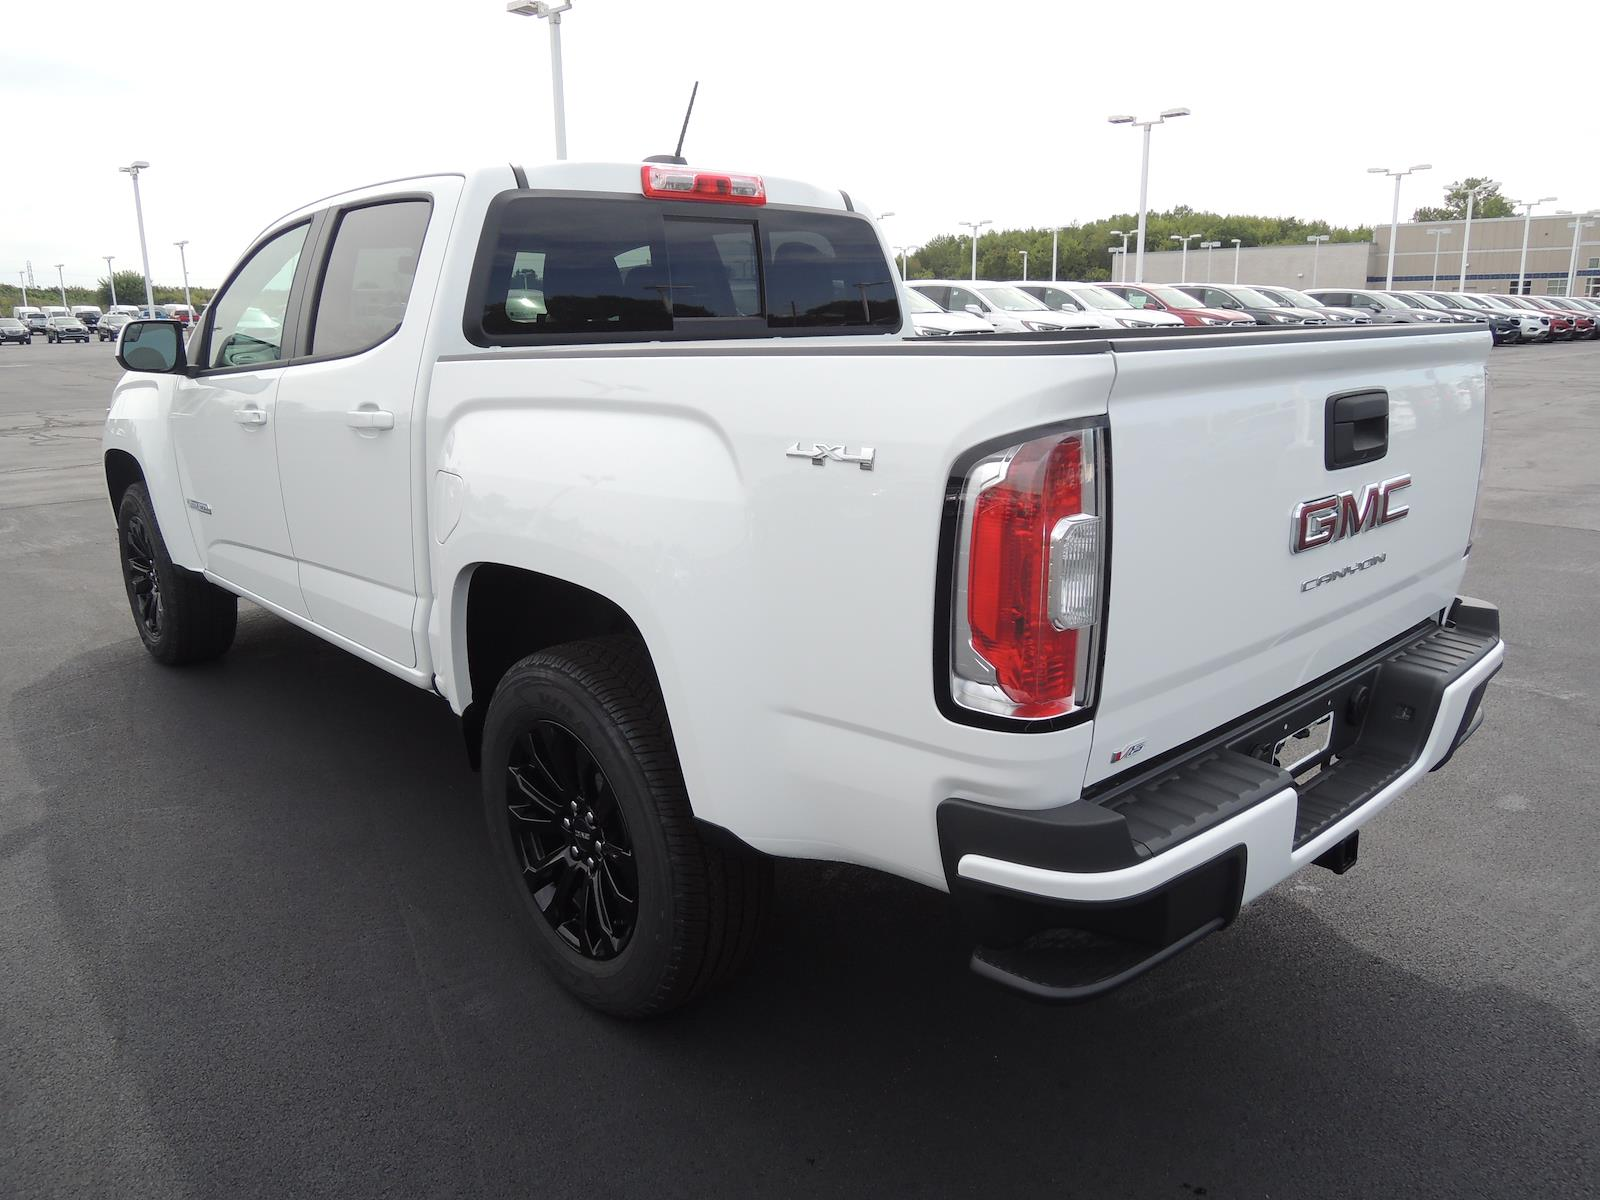 2021 GMC Canyon Crew Cab 4x4, Pickup #MT194 - photo 6